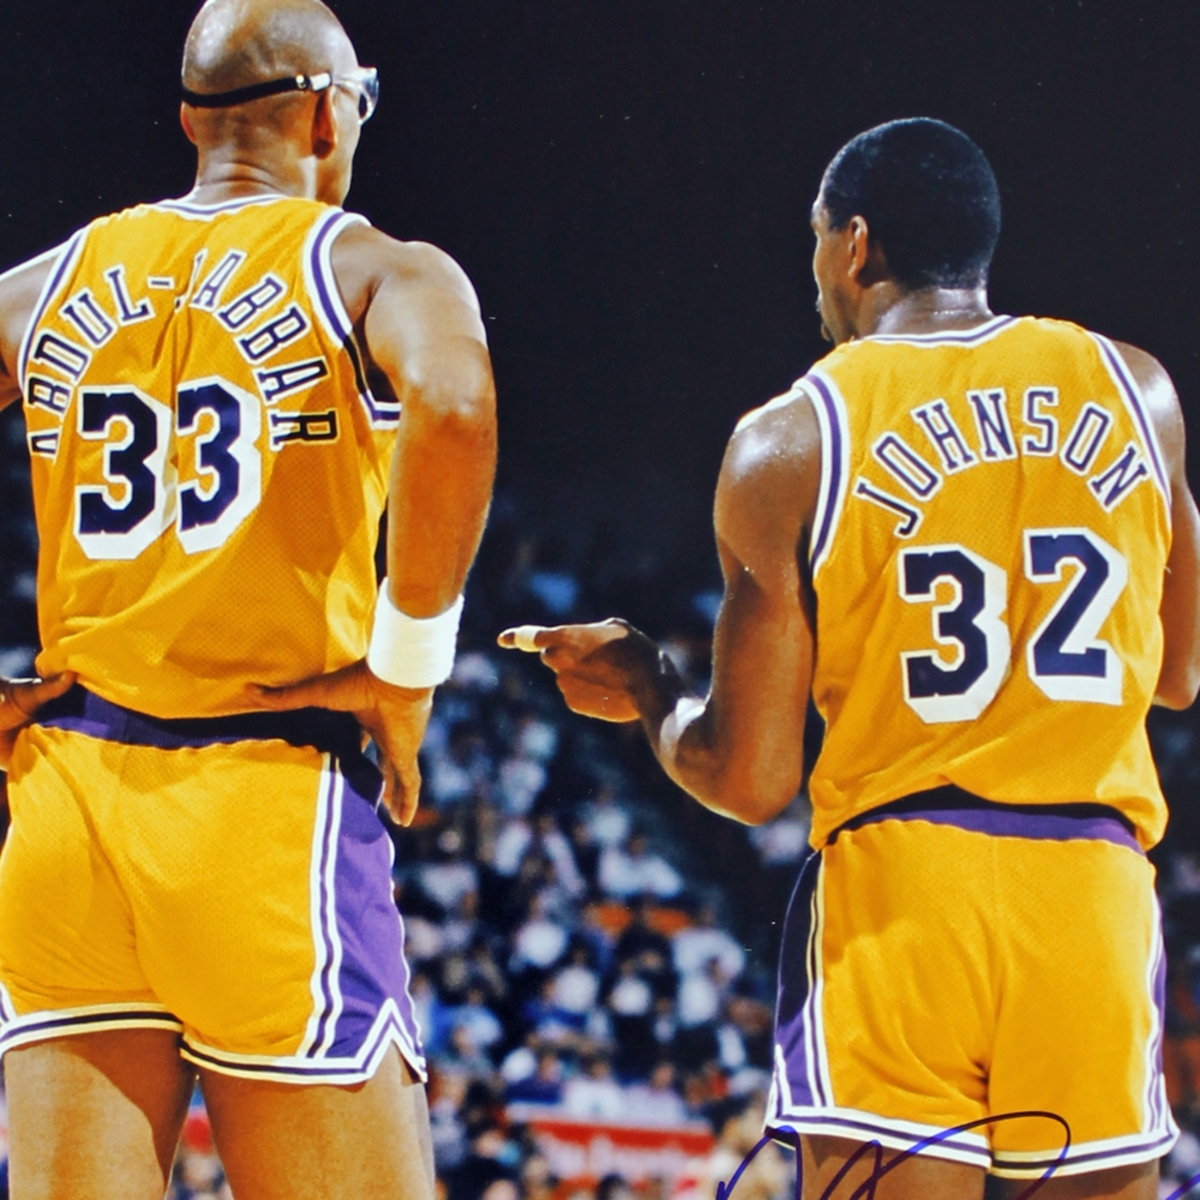 Magic Johnson and Kareem Abdul-Jabbar made an unstoppable duo.